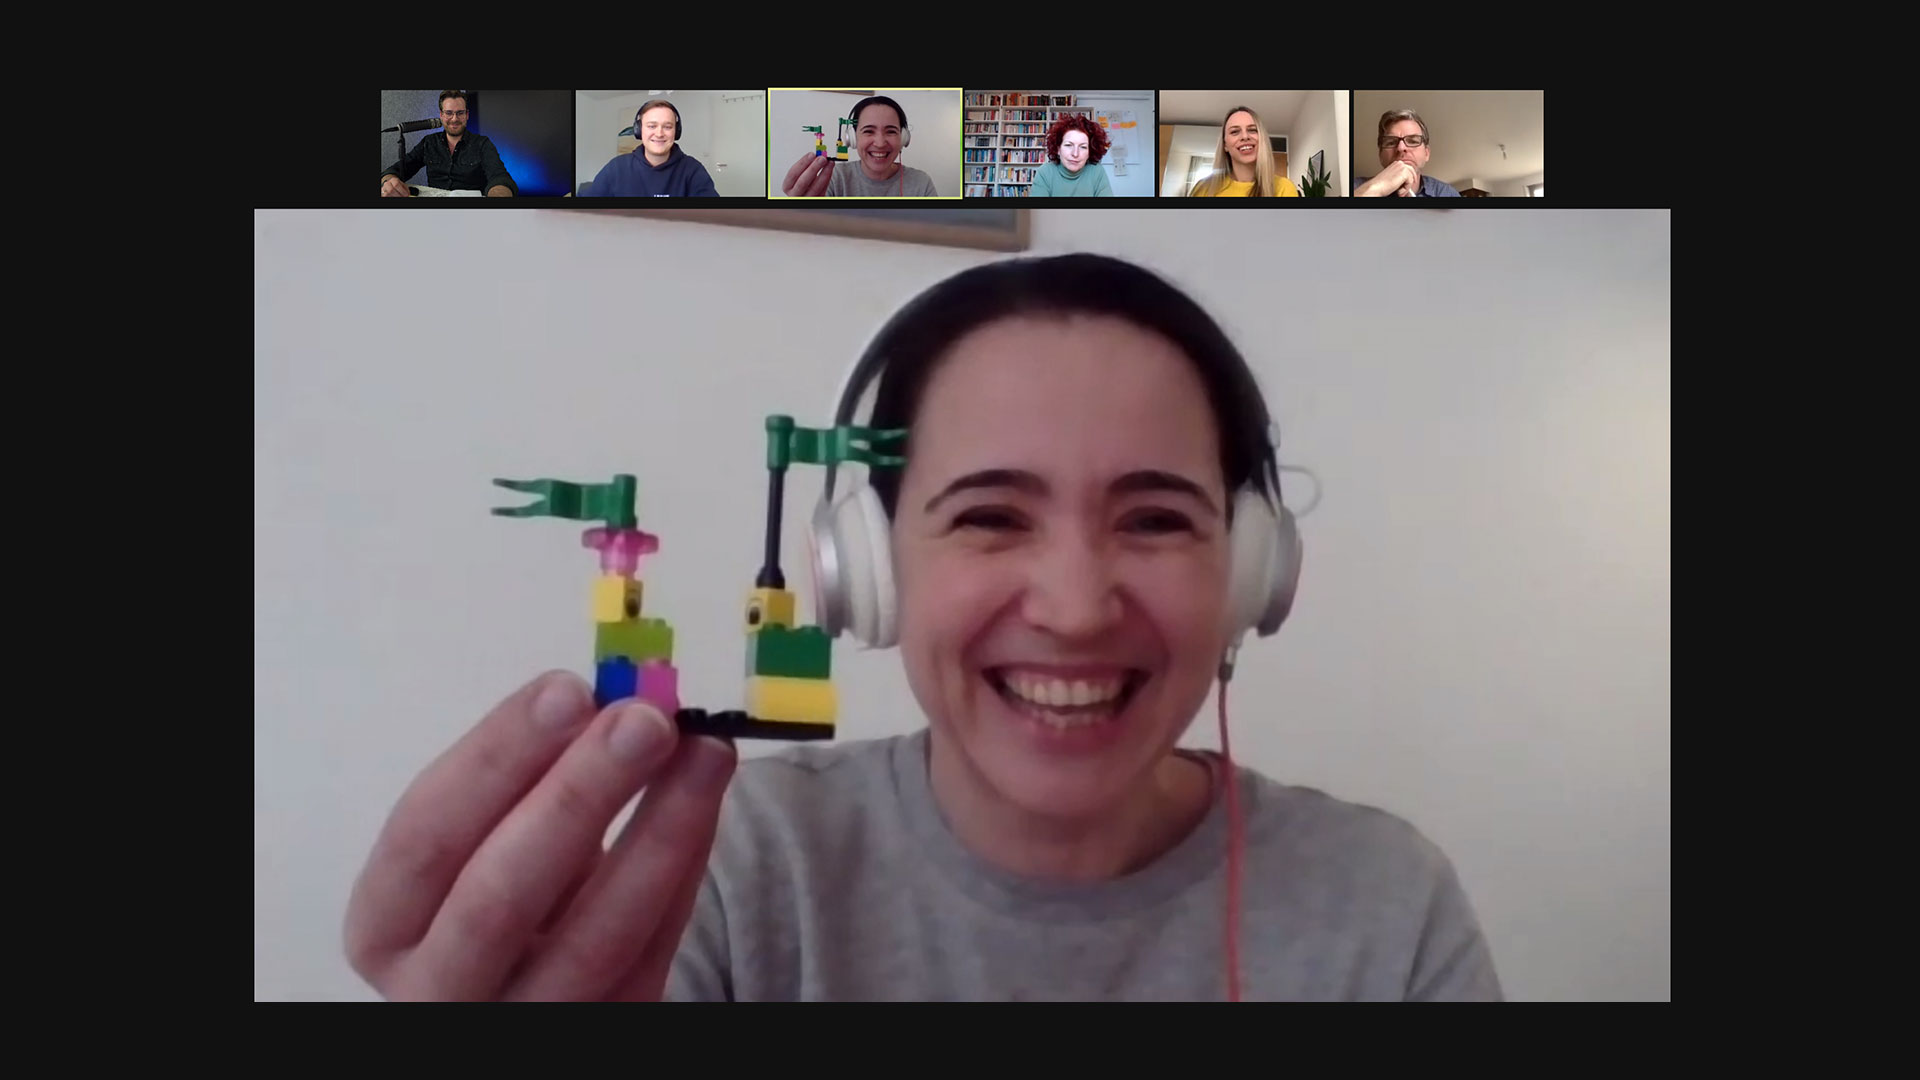 Woman showing Lego Model zoom meeting